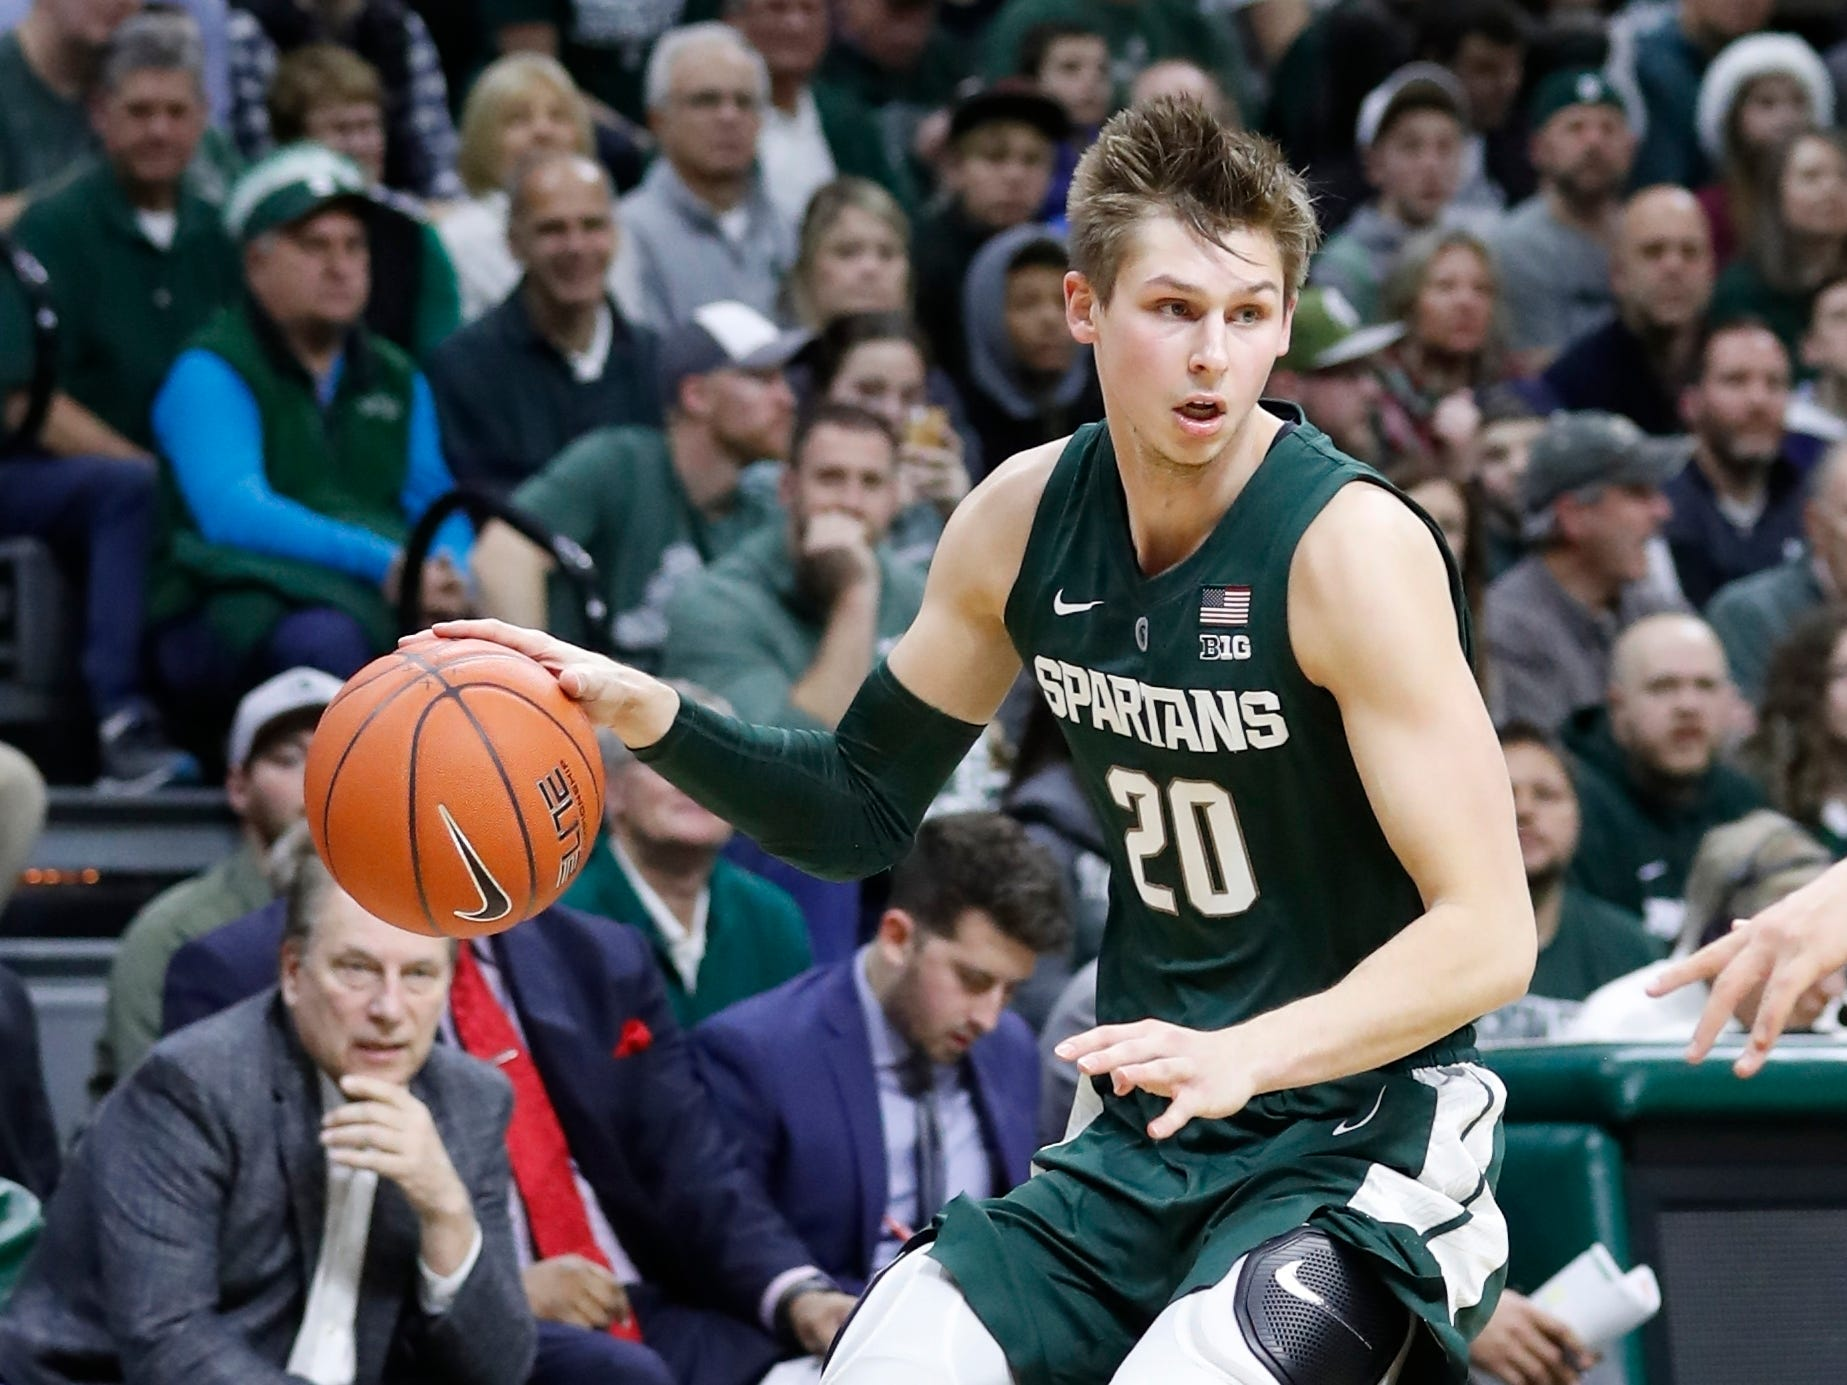 Michigan State guard Matt McQuaid brings the ball up court during the second half of an NCAA college basketball game against Oakland , Friday, Dec. 21, 2018, in East Lansing, Mich.